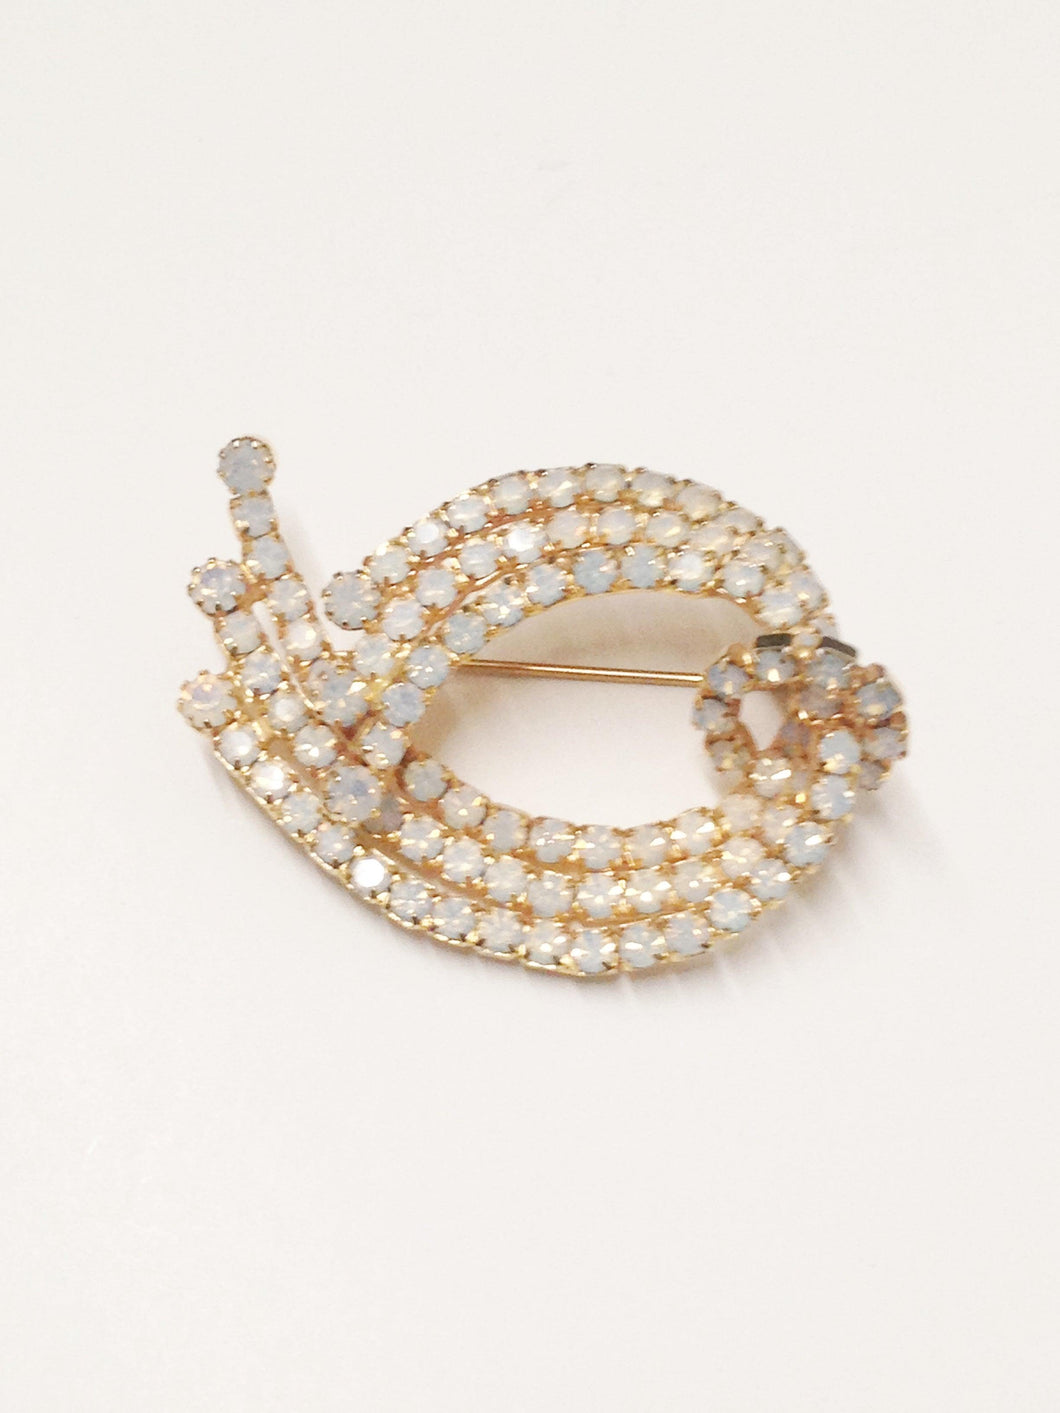 www.hersandhistreasures.com/products/Vintage-Opaque-White-Rhinestone-Brooch-Pin